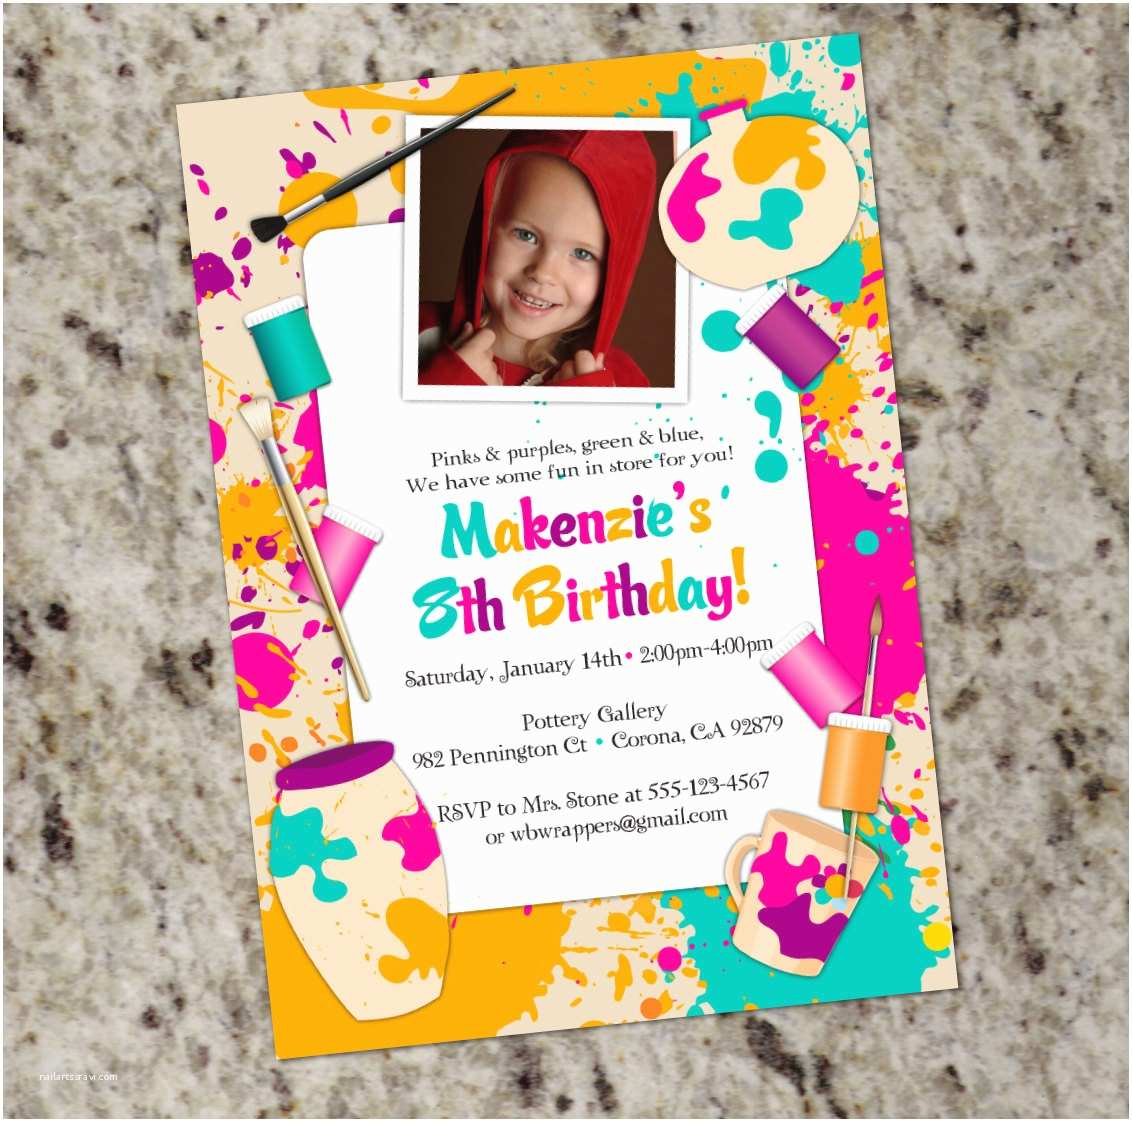 Painting Birthday Party Invitations Paint Your Own Pottery Birthday Party Invitation Pottery